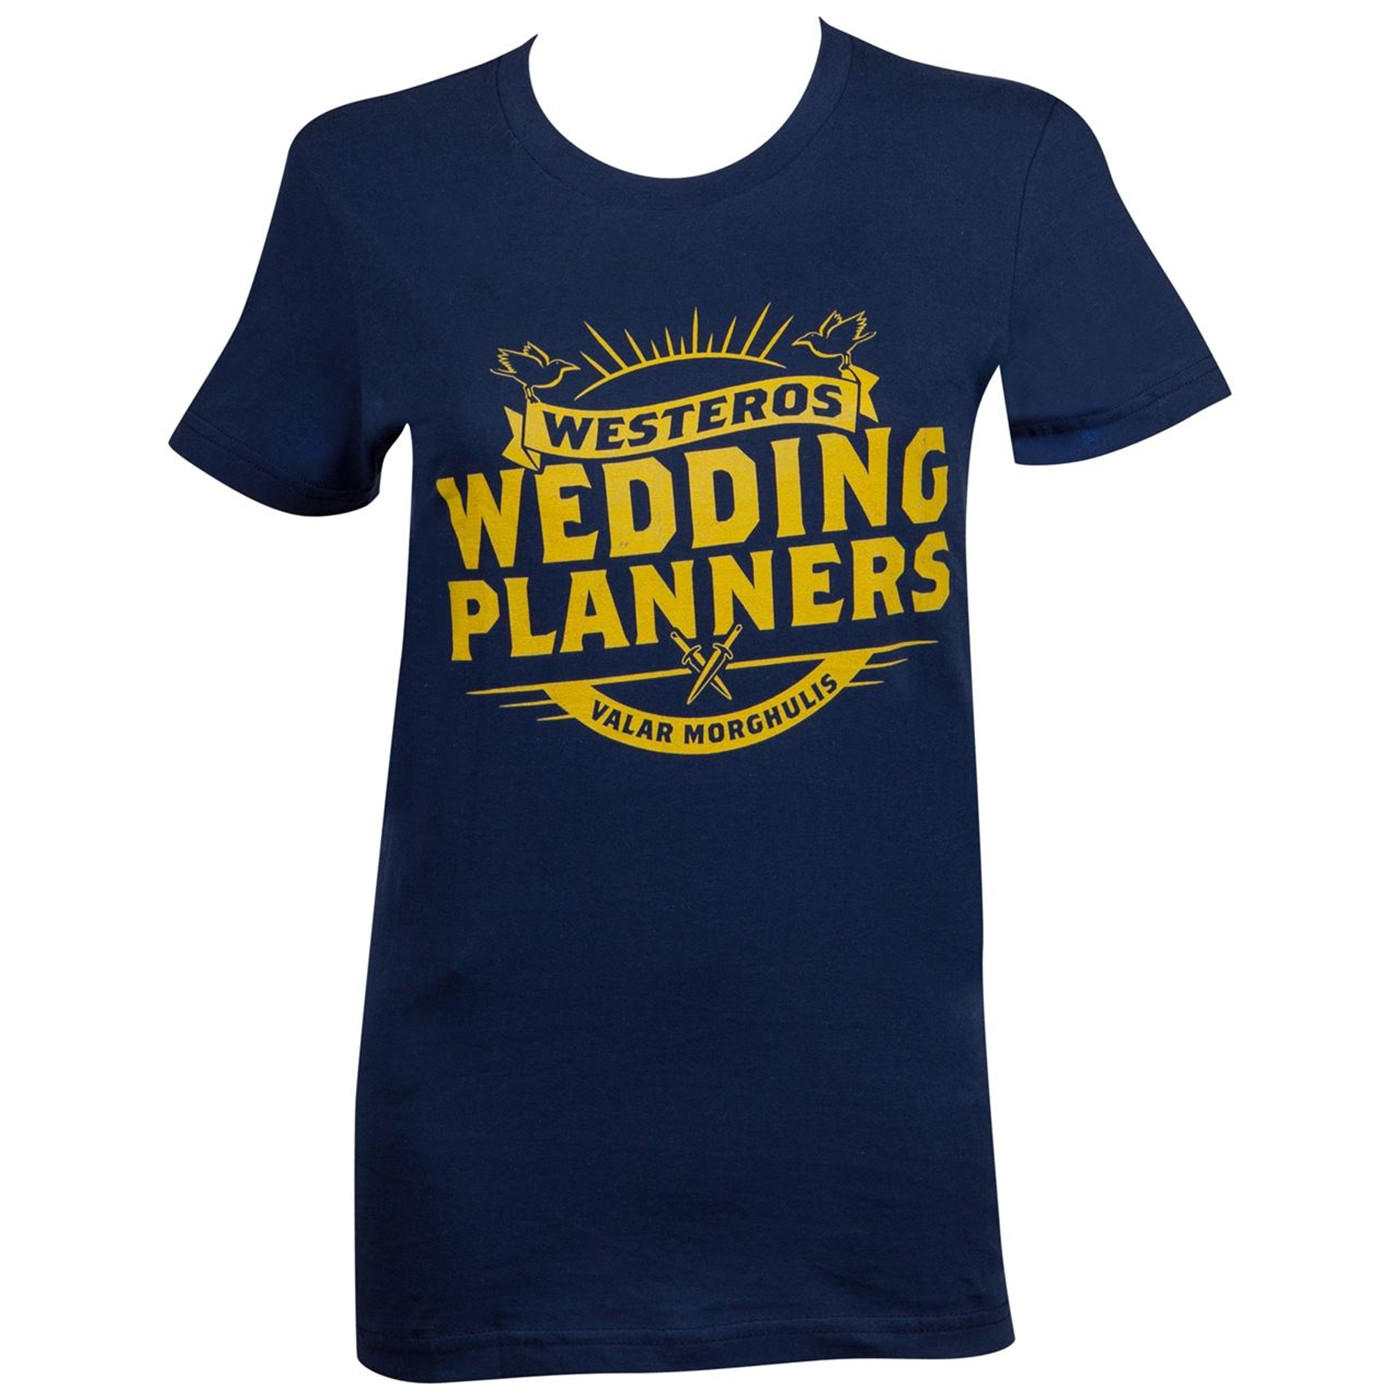 Game of Thrones Westeros Wedding Planners Women's T-Shirt